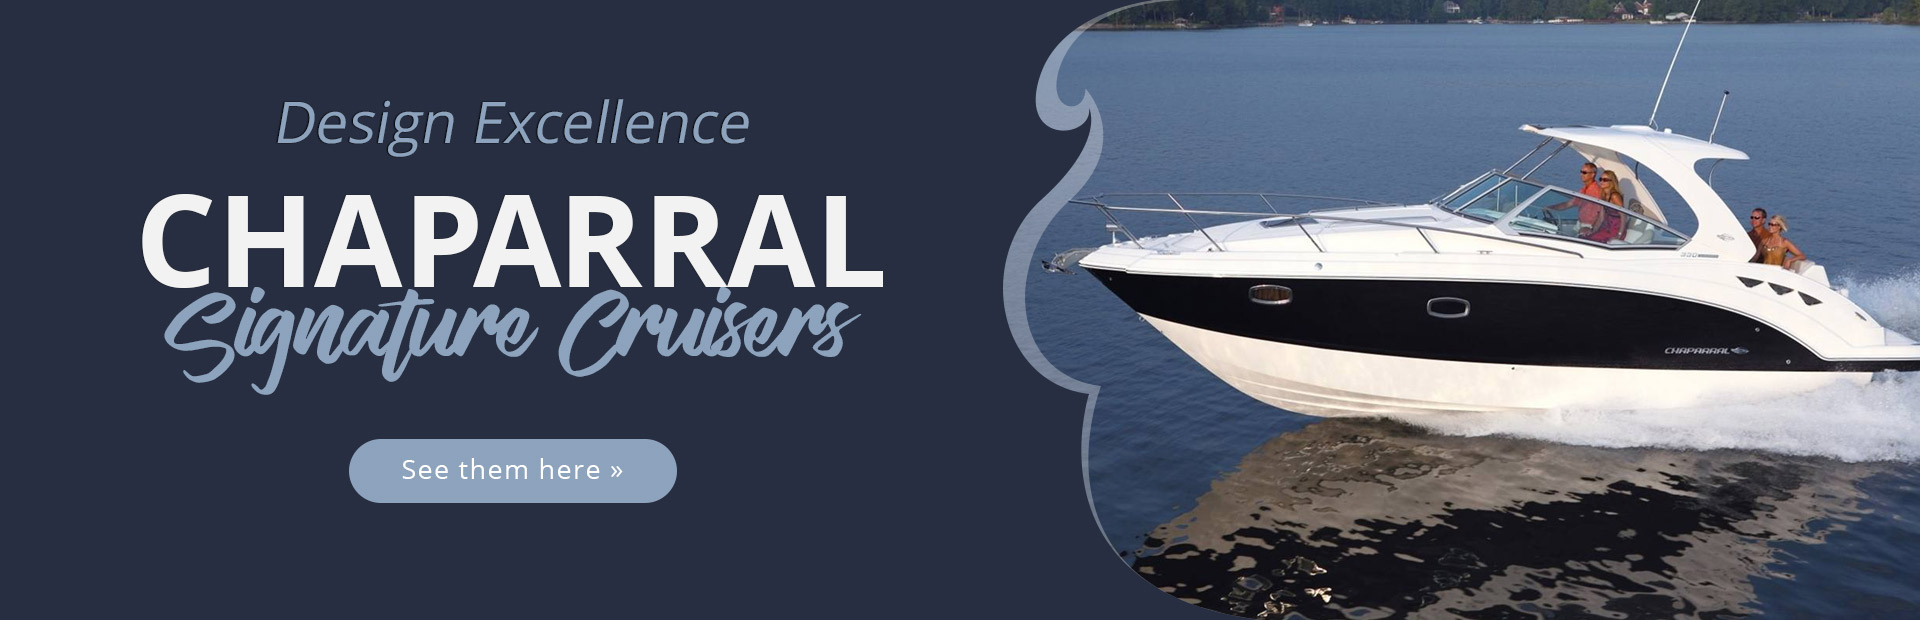 Chaparral Signature Cruisers: Click here to view the models.